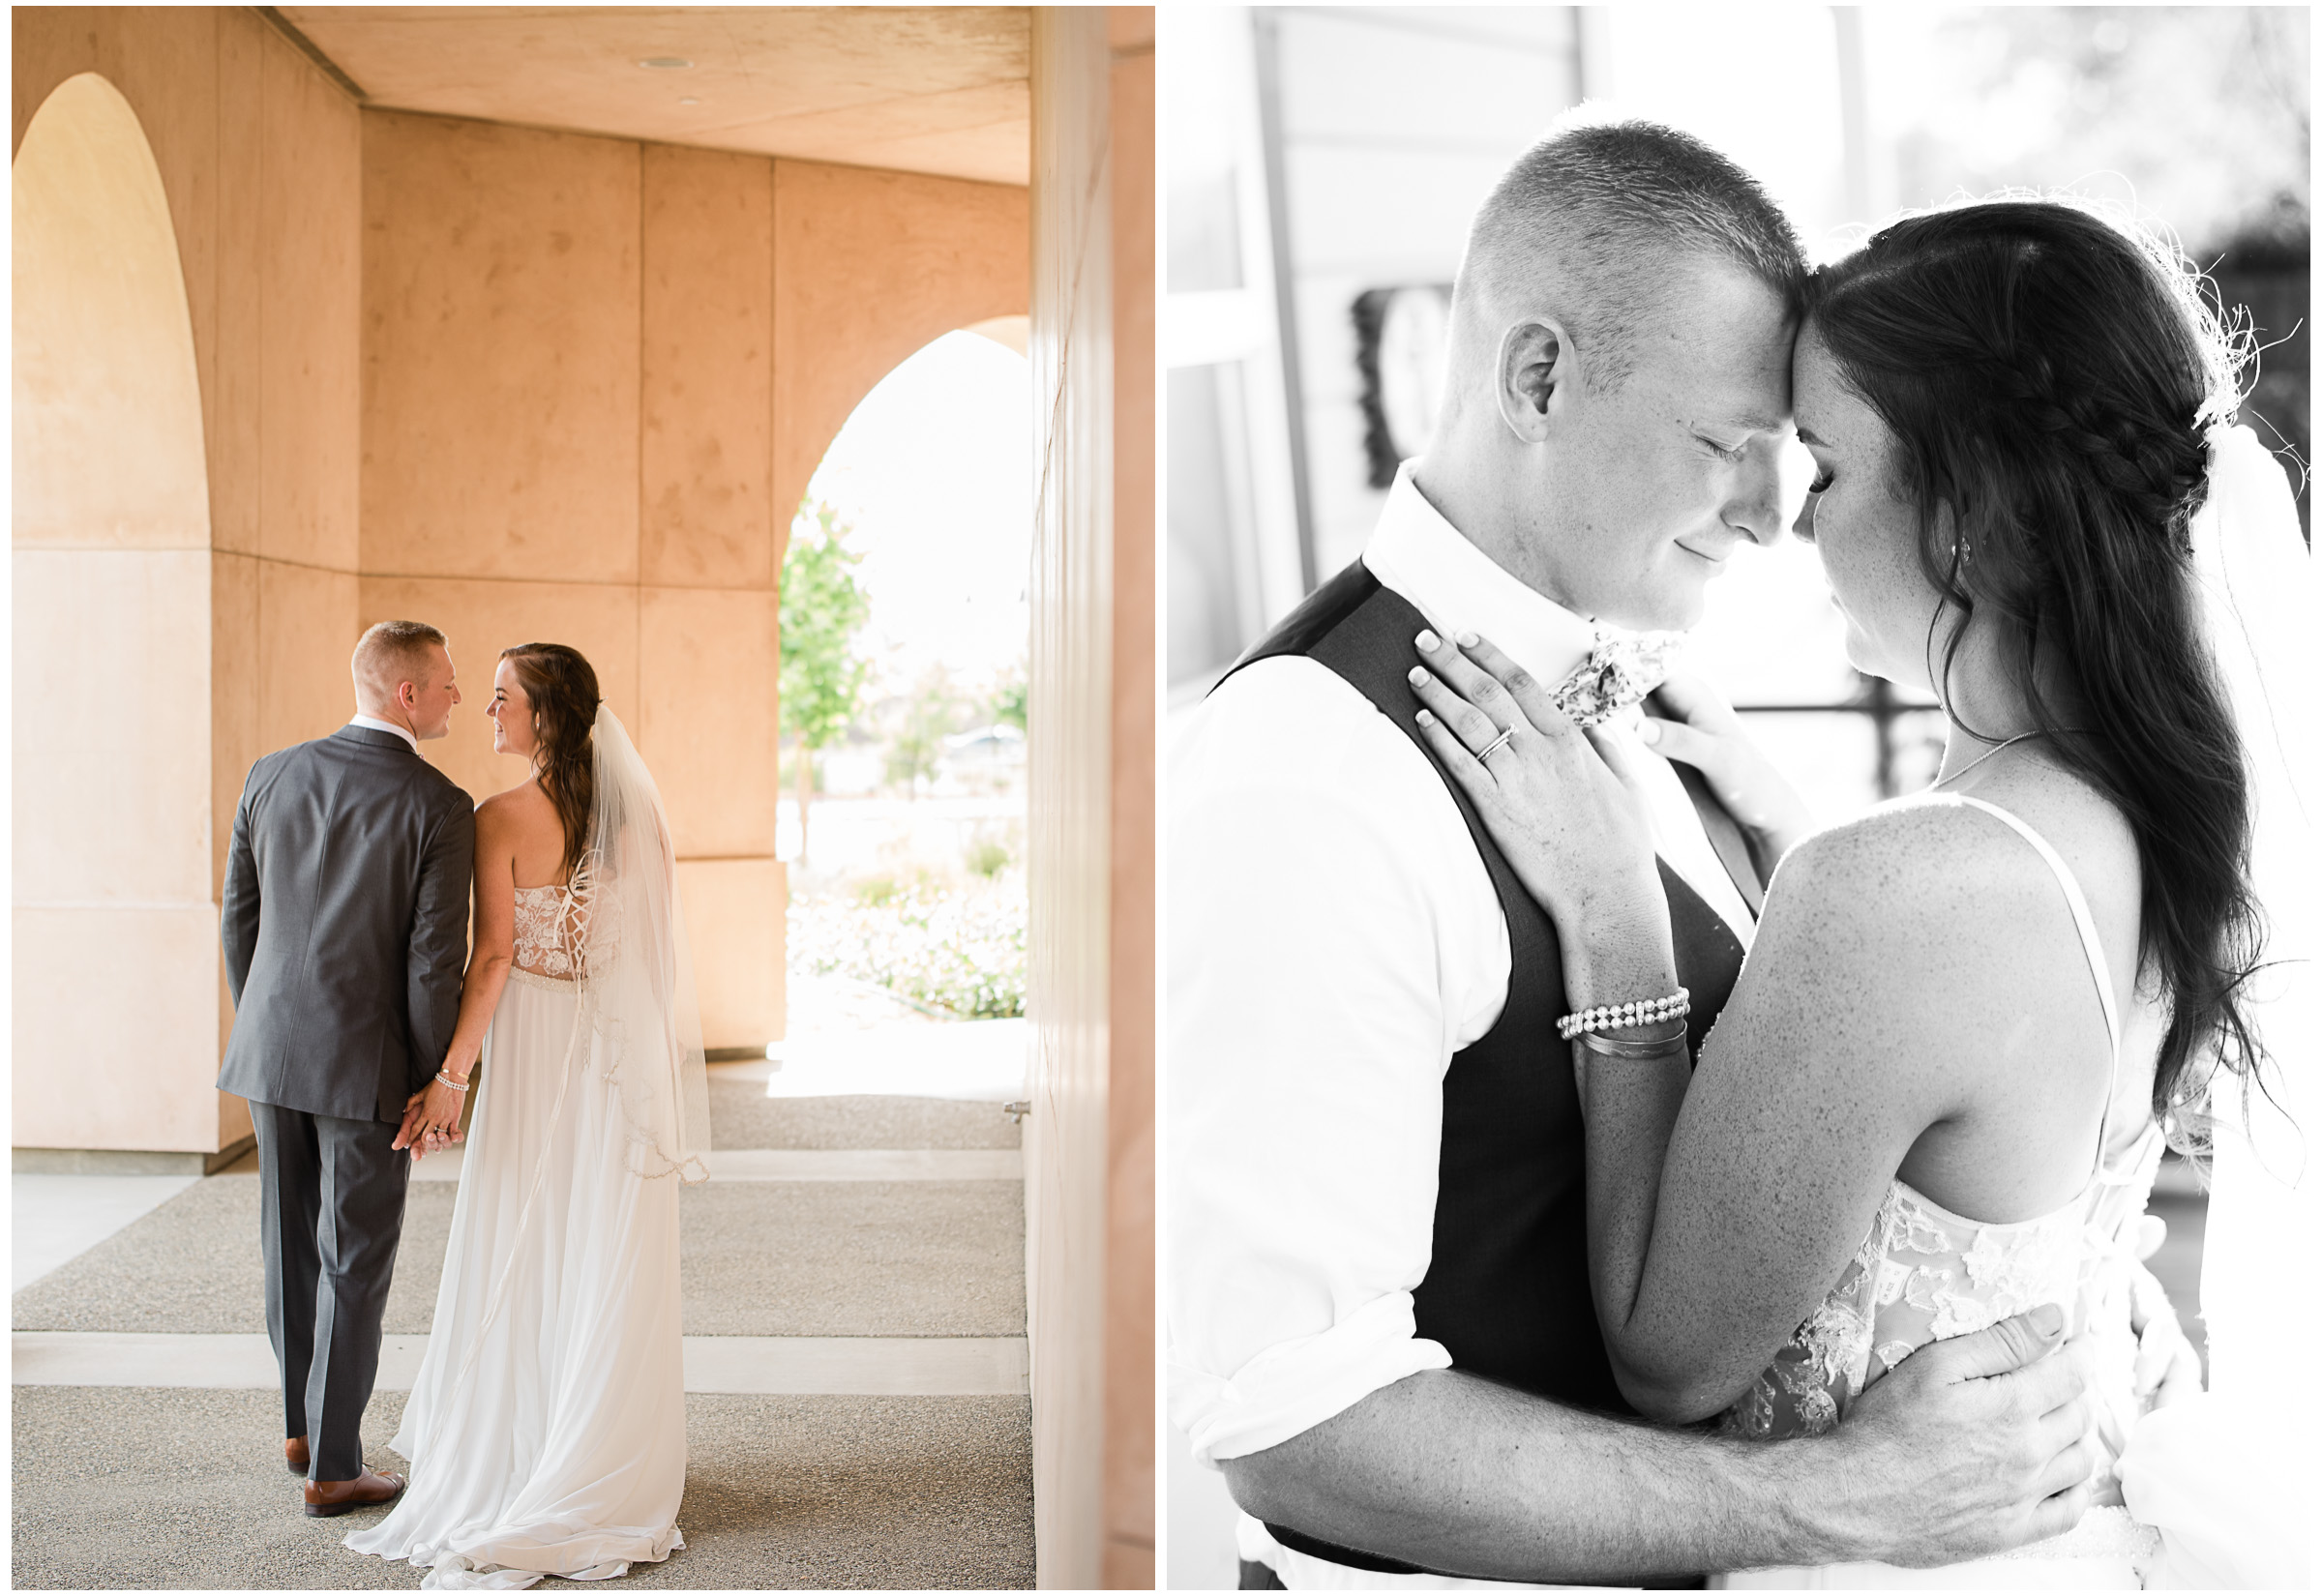 Loomis Wedding - Sacramento Photographer - Blue Goose - Justin Wilcox Photography - 18.jpg